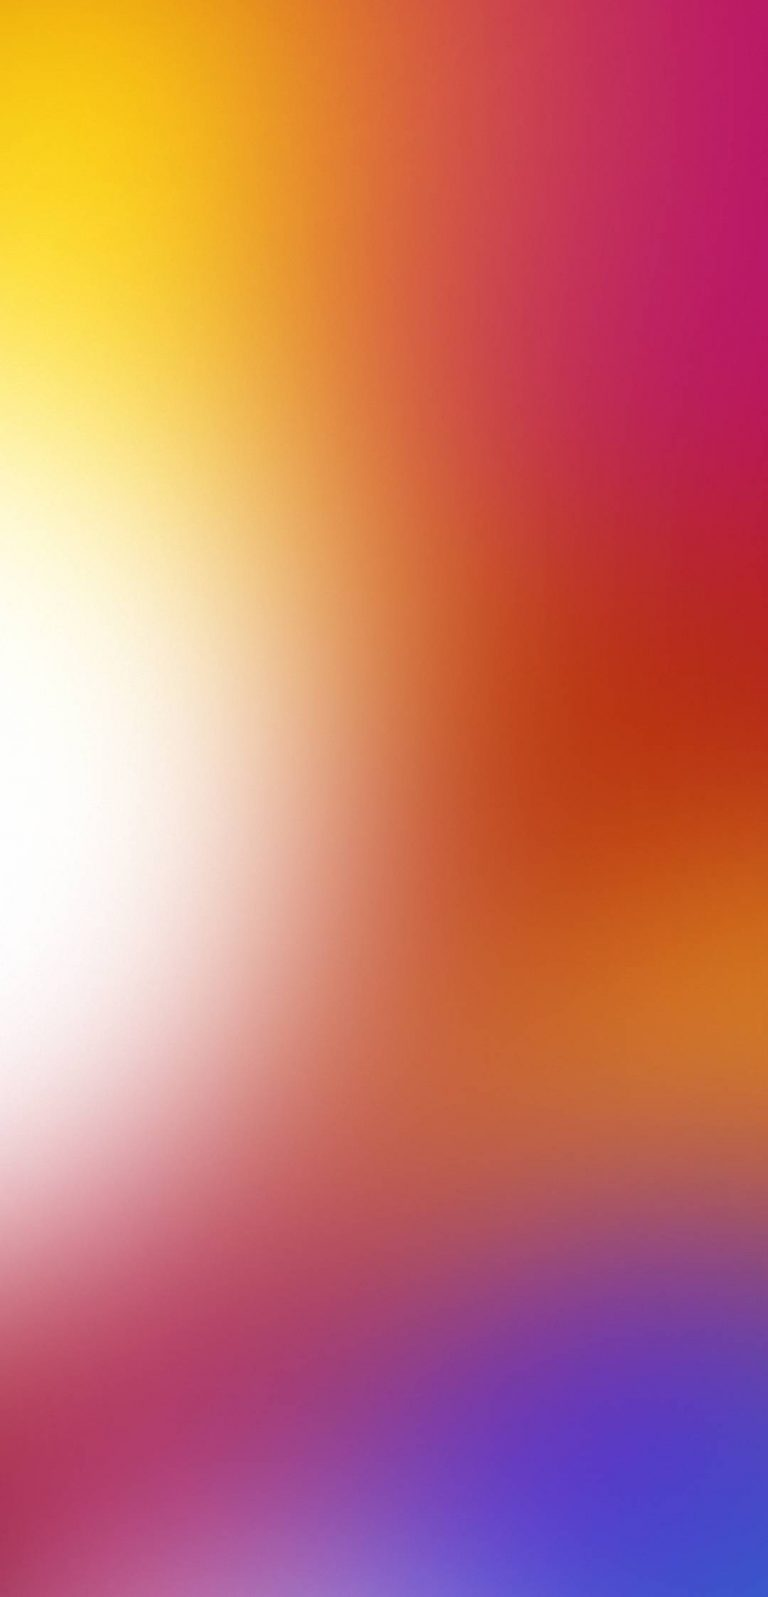 Lenovo K5 Note 2018 Stock Wallpaper 04 1080x2246 768x1597